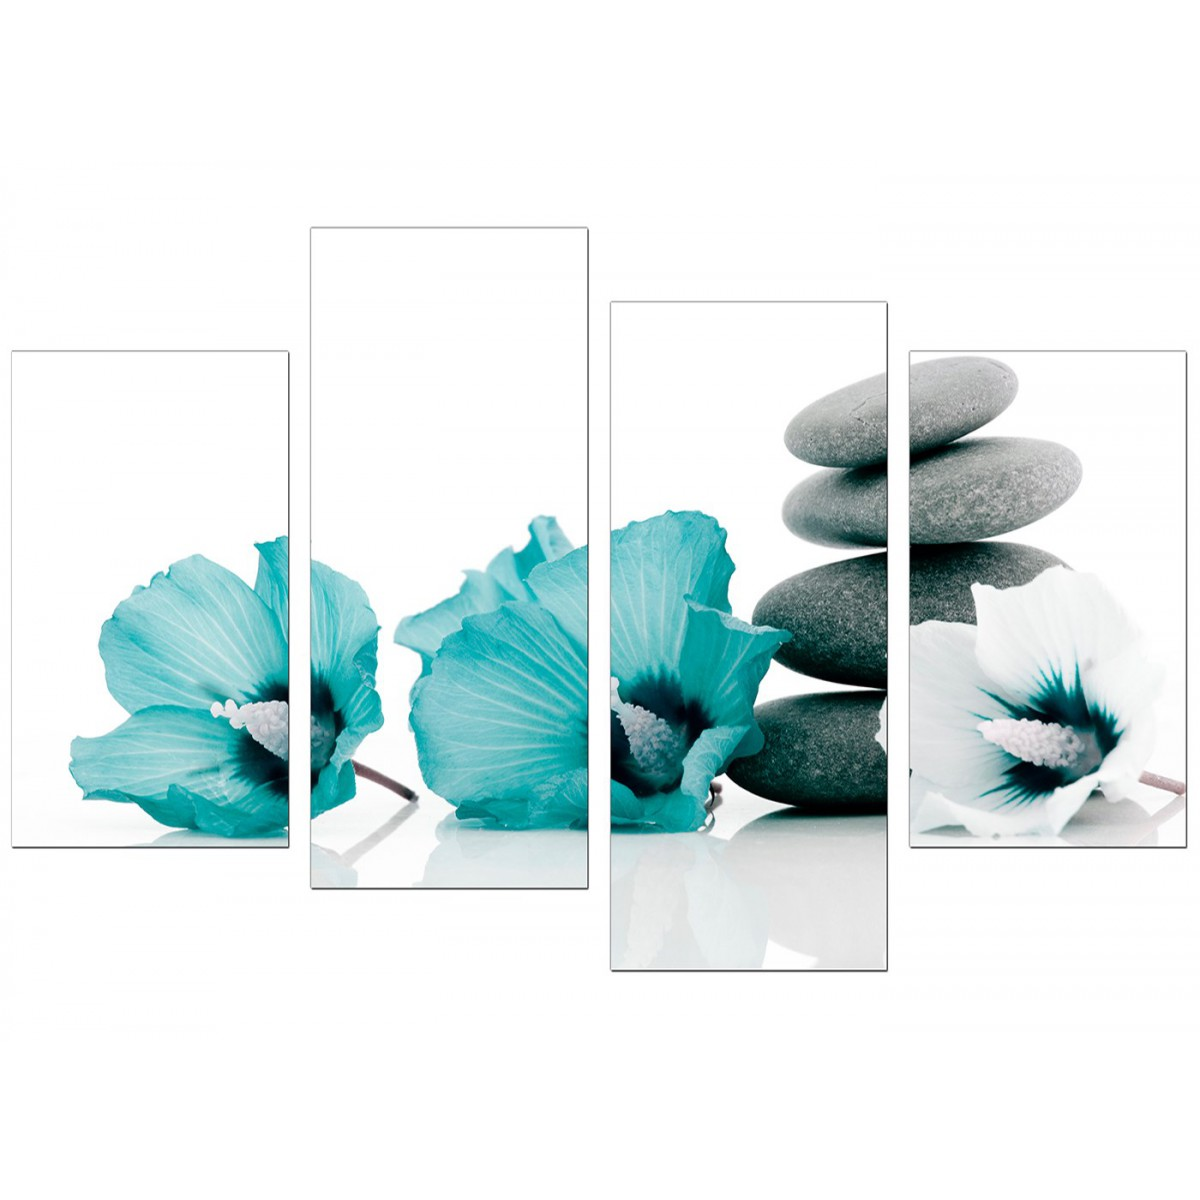 Items Similar To Teal Purple Abstract Flowers Wall Decor: Canvas Wall Art Of Flowers In Teal For Your Living Room